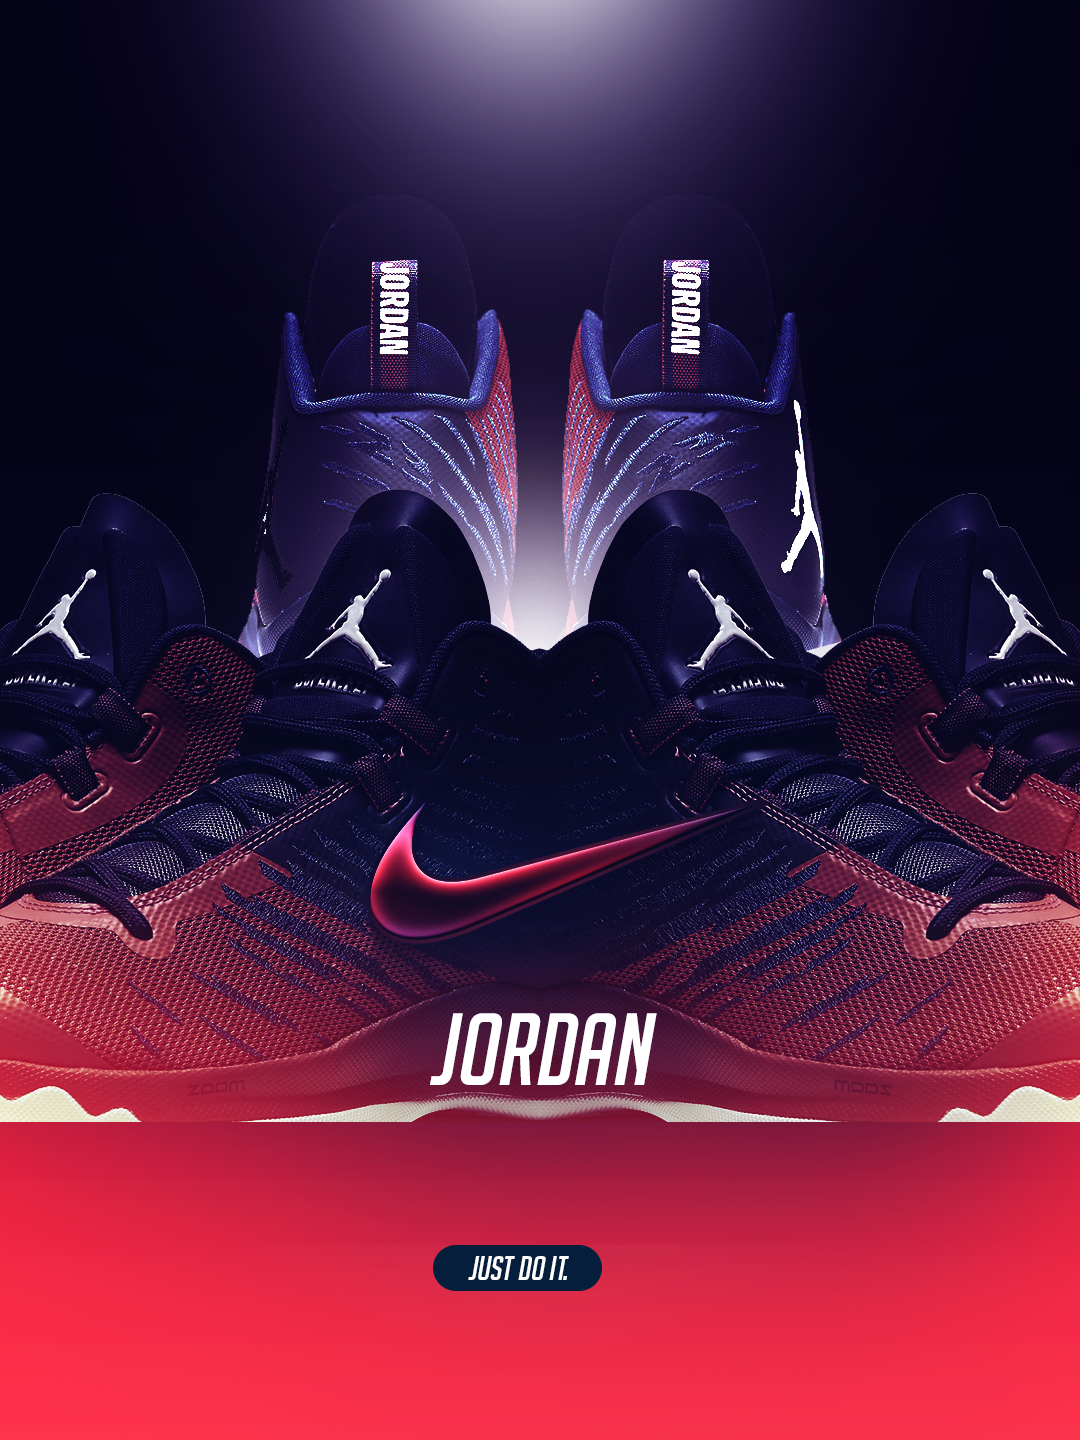 Nike Jordan Superfly 5 on Behance 387cc067f